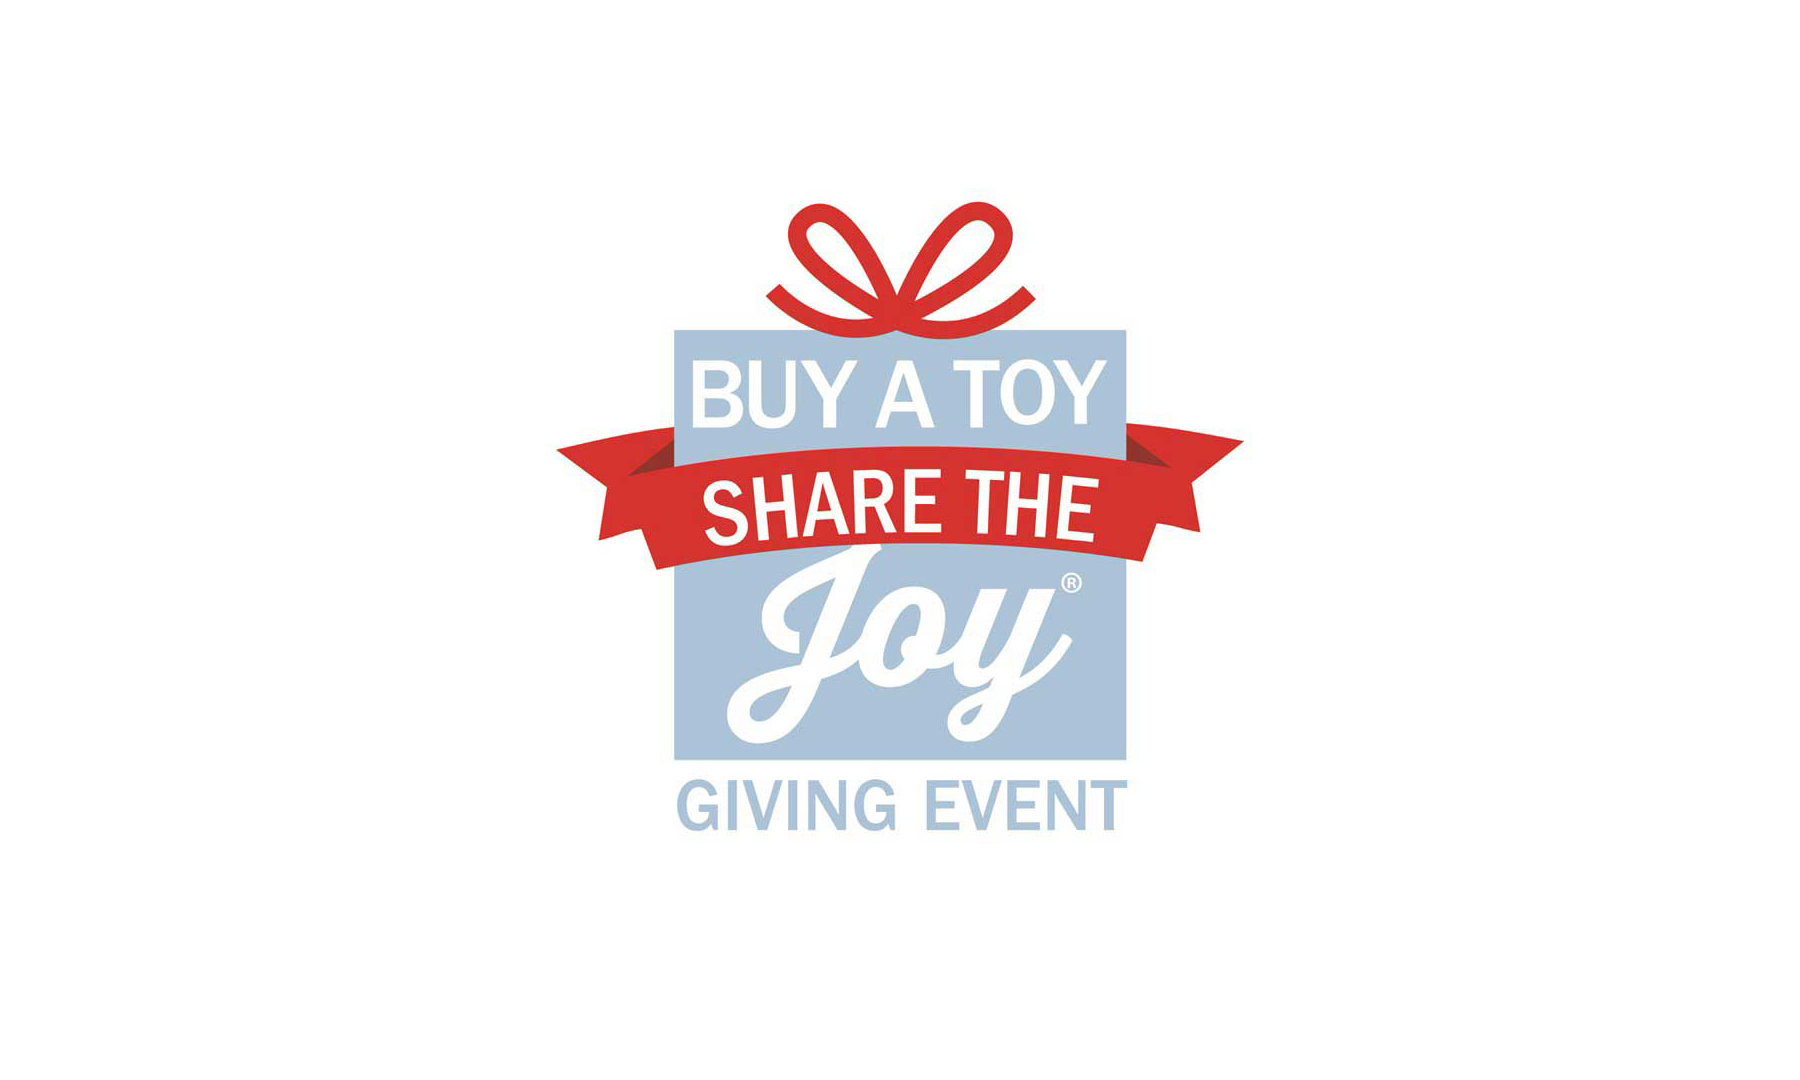 Meijer's Buy a Toy, Share the Joy logo